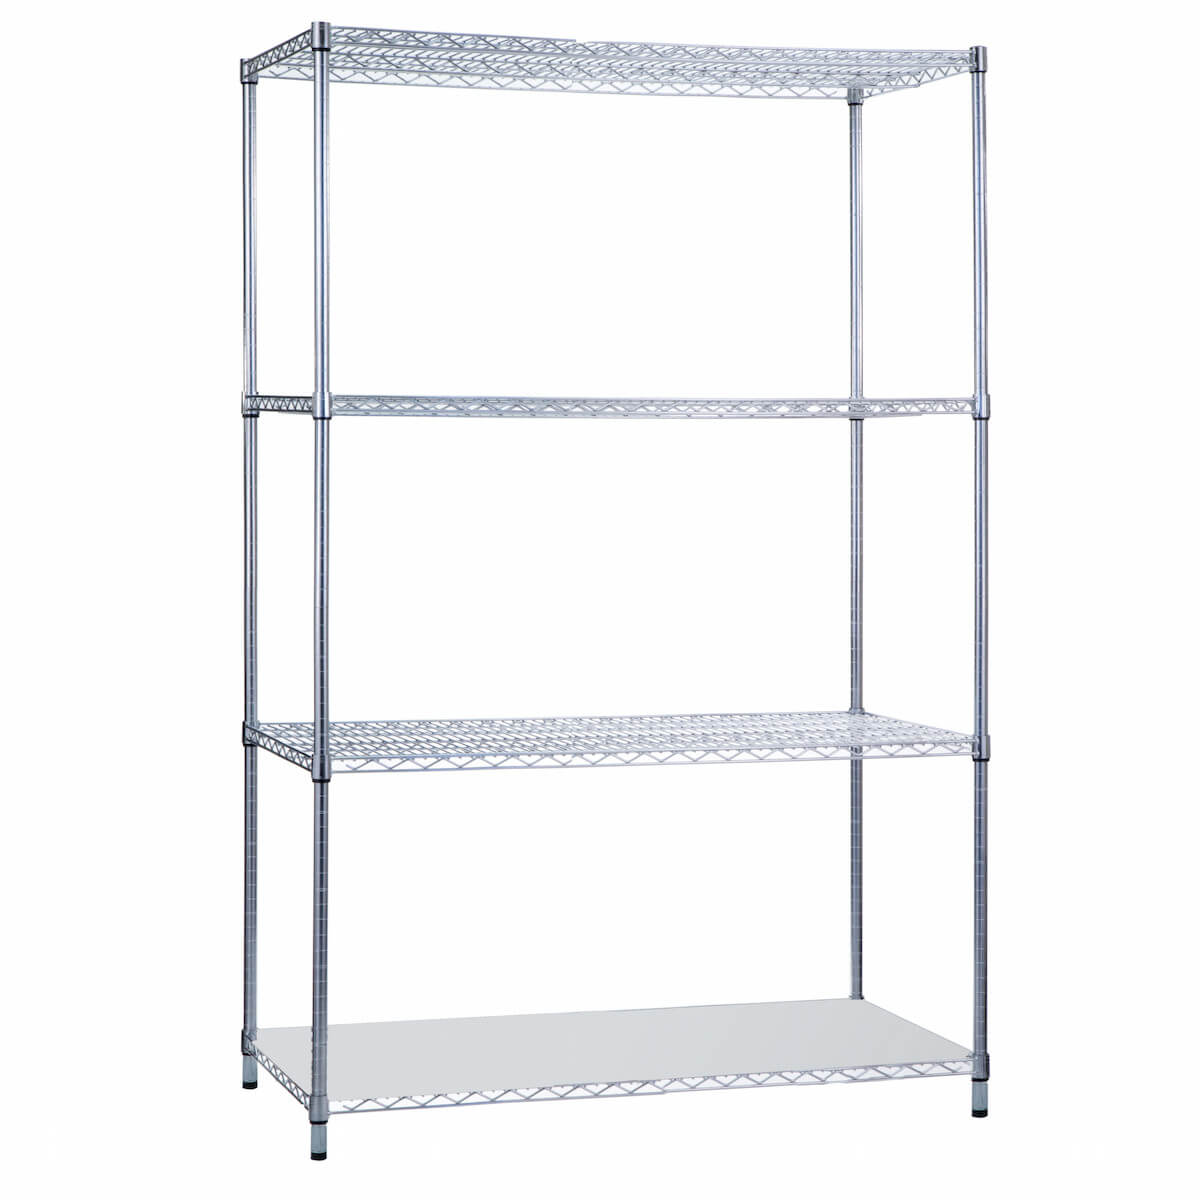 SHELVING UNIT WITH SOLID BOTTOM SHELF